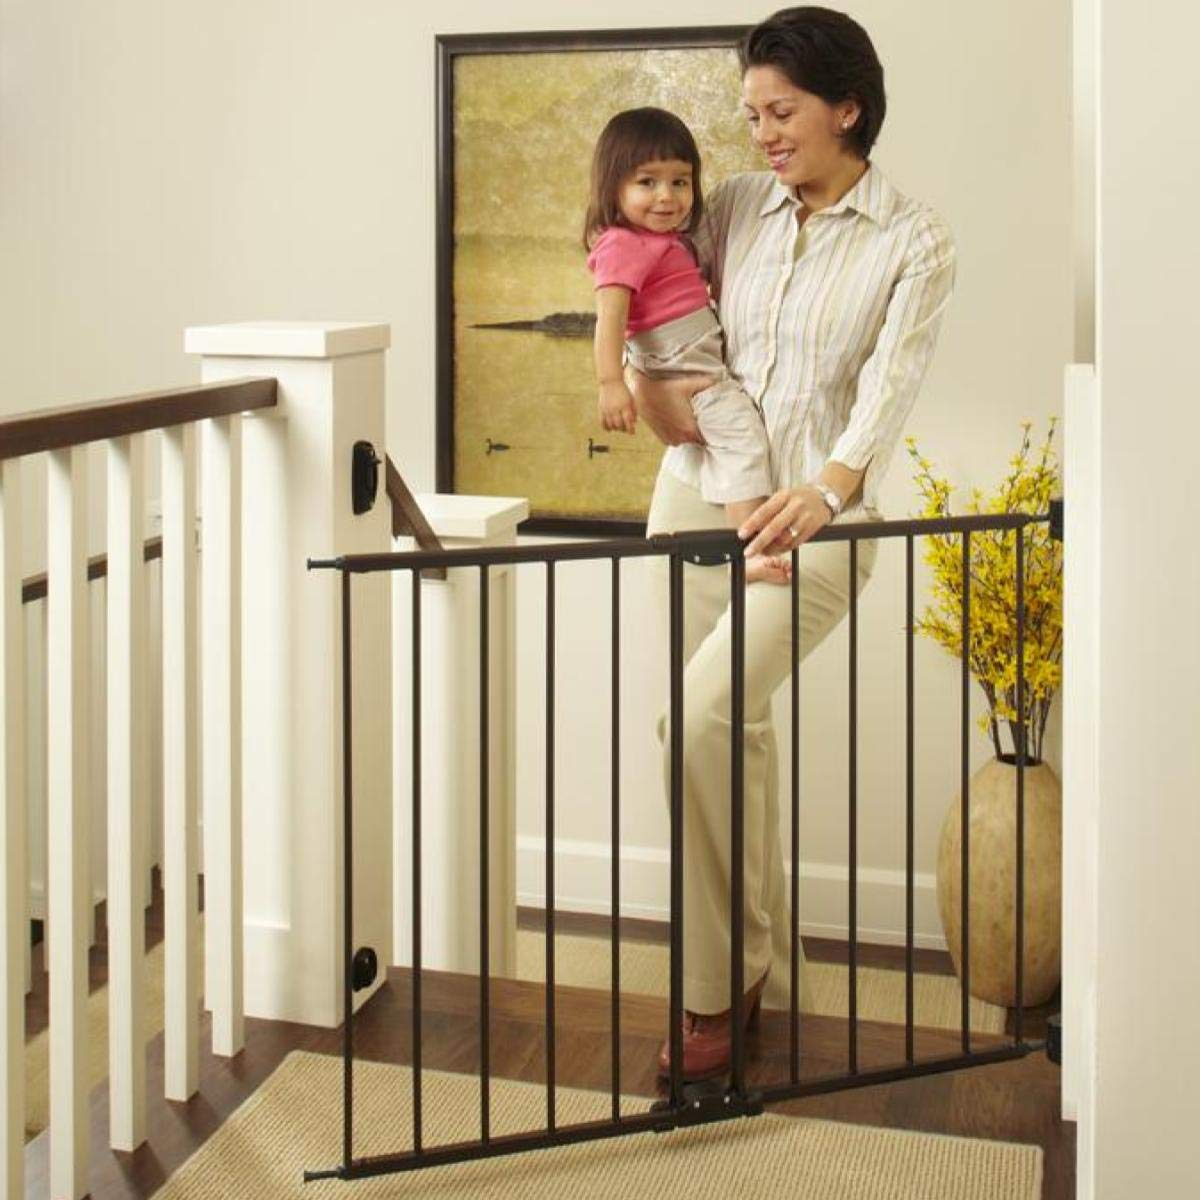 North States 47.85'' Easy Swing & Lock Baby Gate: Ideal for Standard or Wider stairways, Swings to self-Lock. Hardware Mount (mounts Included). Fits 28.68''-47.85'' Wide (31'' Tall, Bronze) by North States